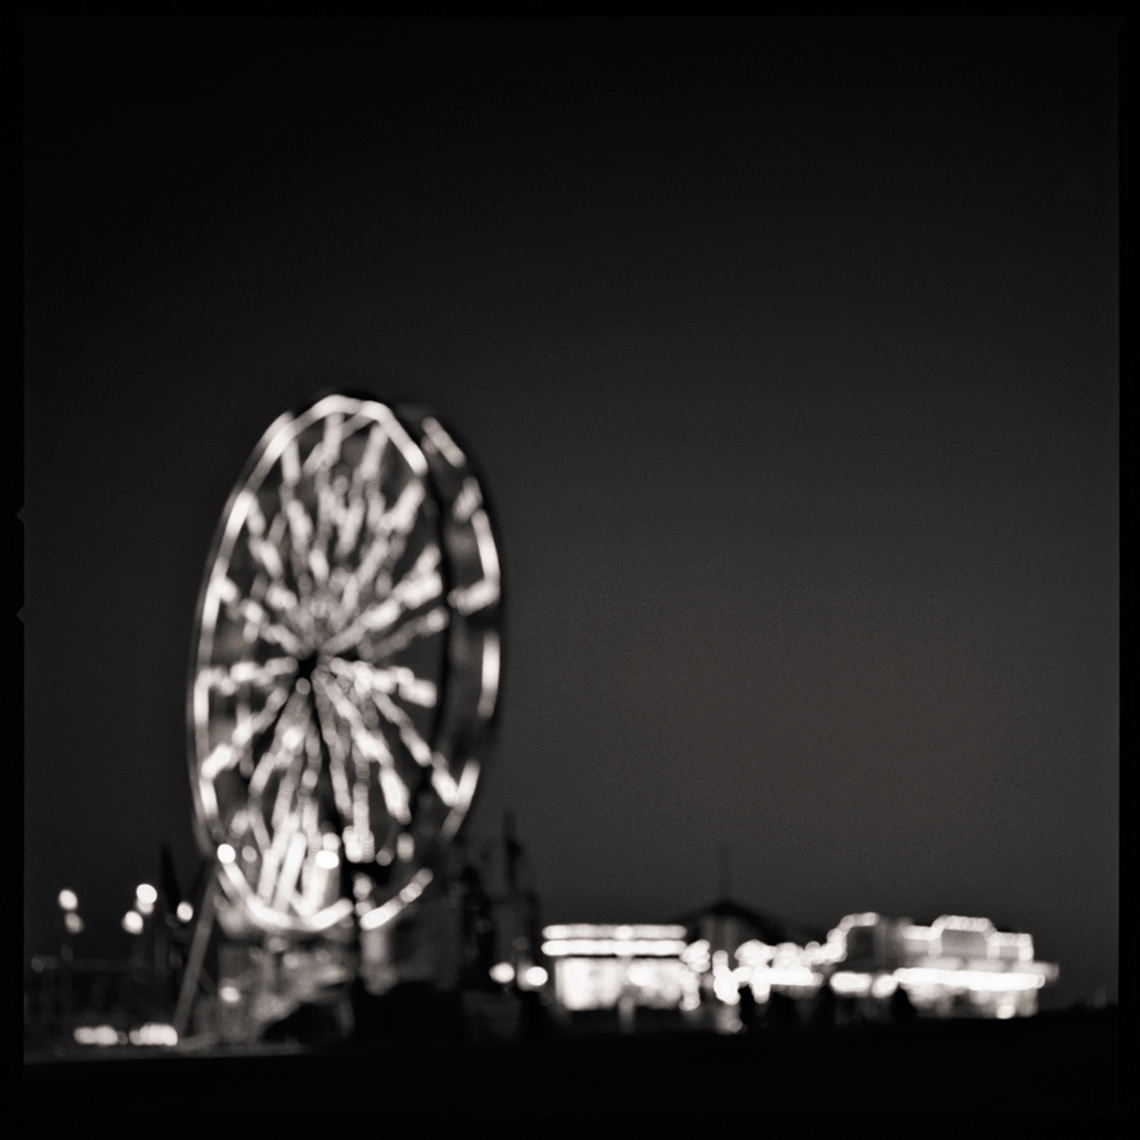 Sean Perry Photographs • The Lost Midway, from the series Fairgrounds